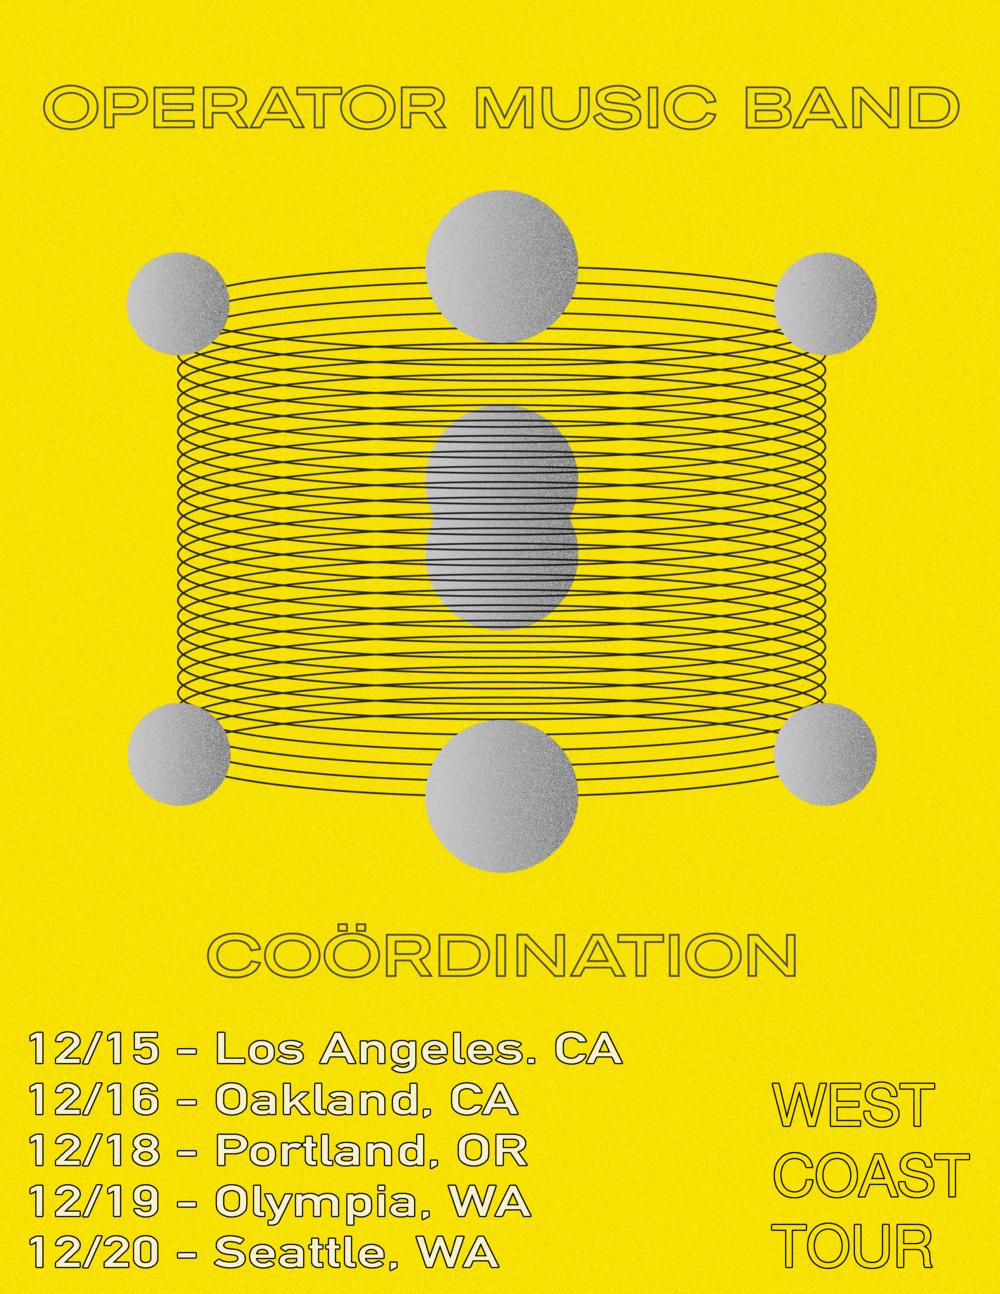 WestCoastTourPoster.png